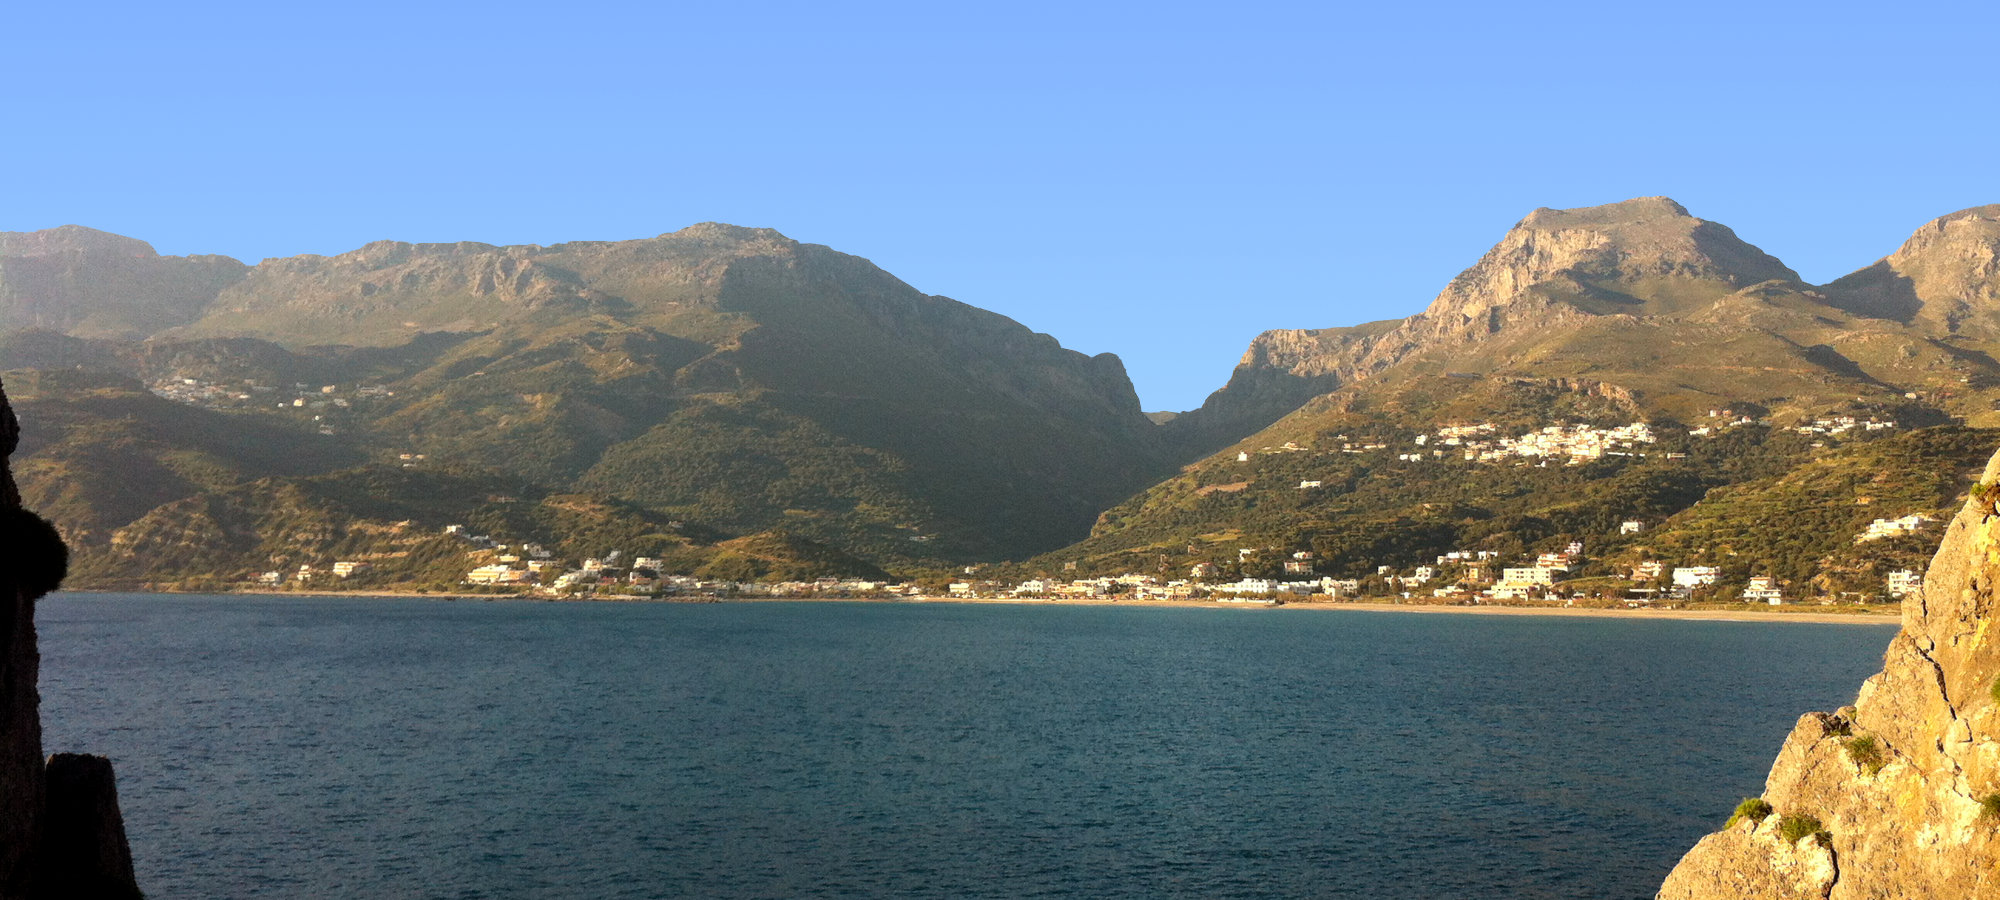 Plakias Bay and the Mountains